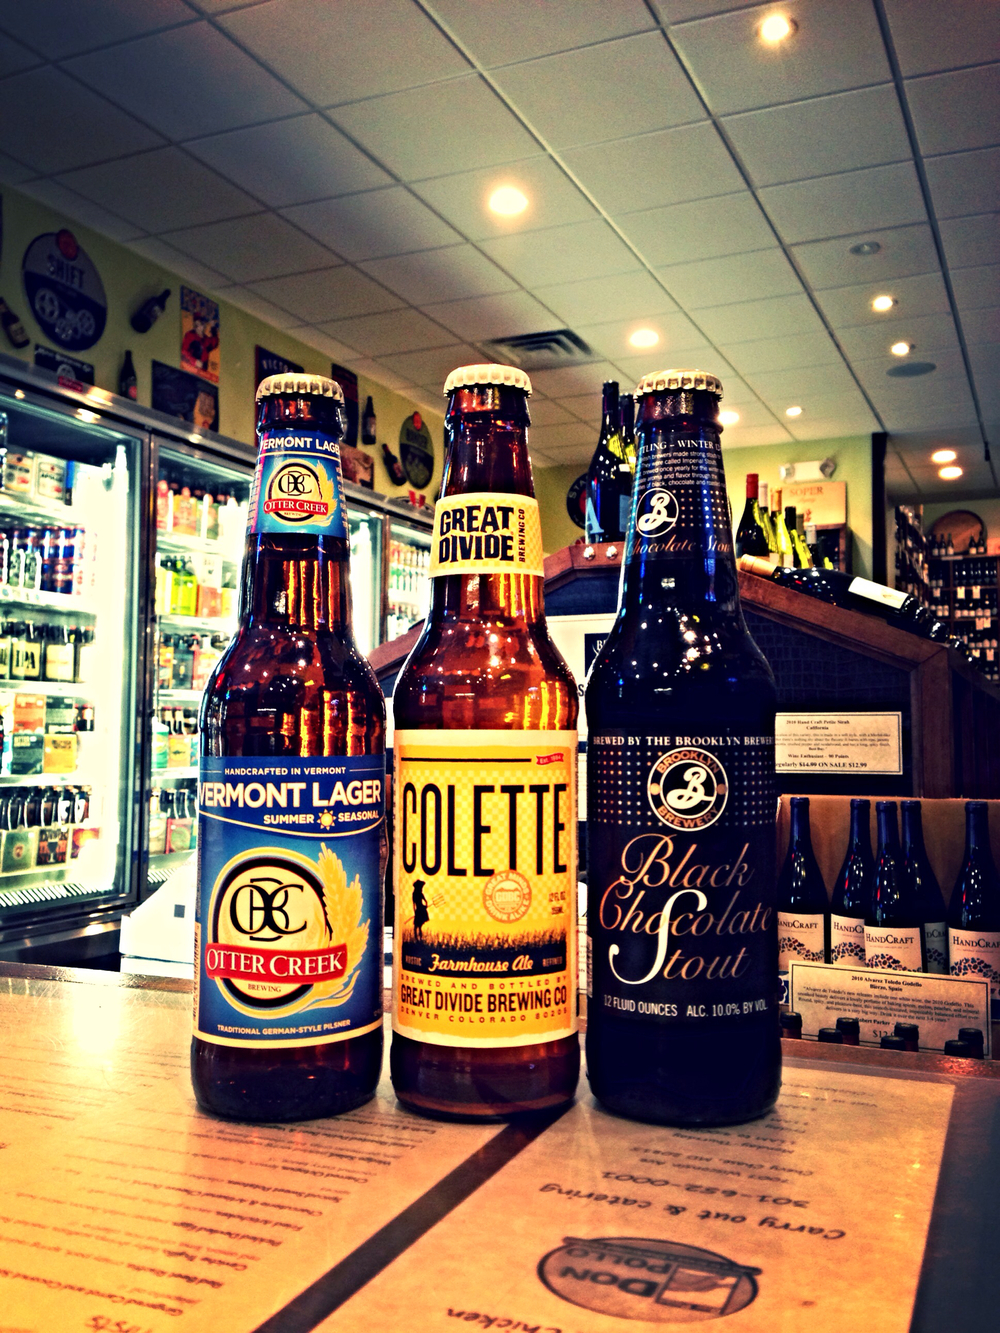 Otter Creek Vermont Lager, Great Divide Colette, and Brooklyn Black Chocolate Stout